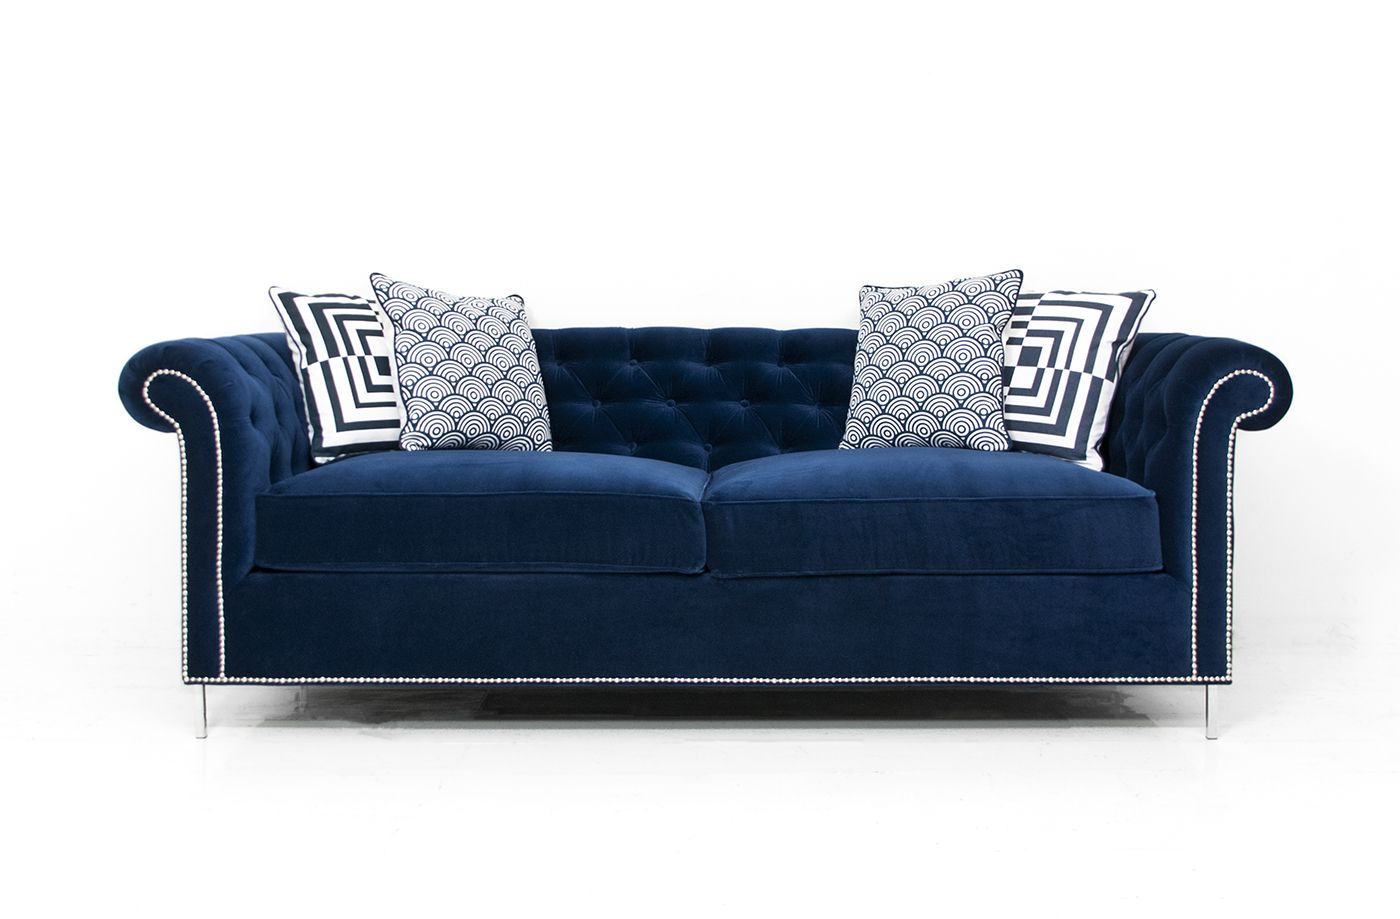 modern victorian sofa dundee gumtree roosevelt in regal navy velvet furniture seats